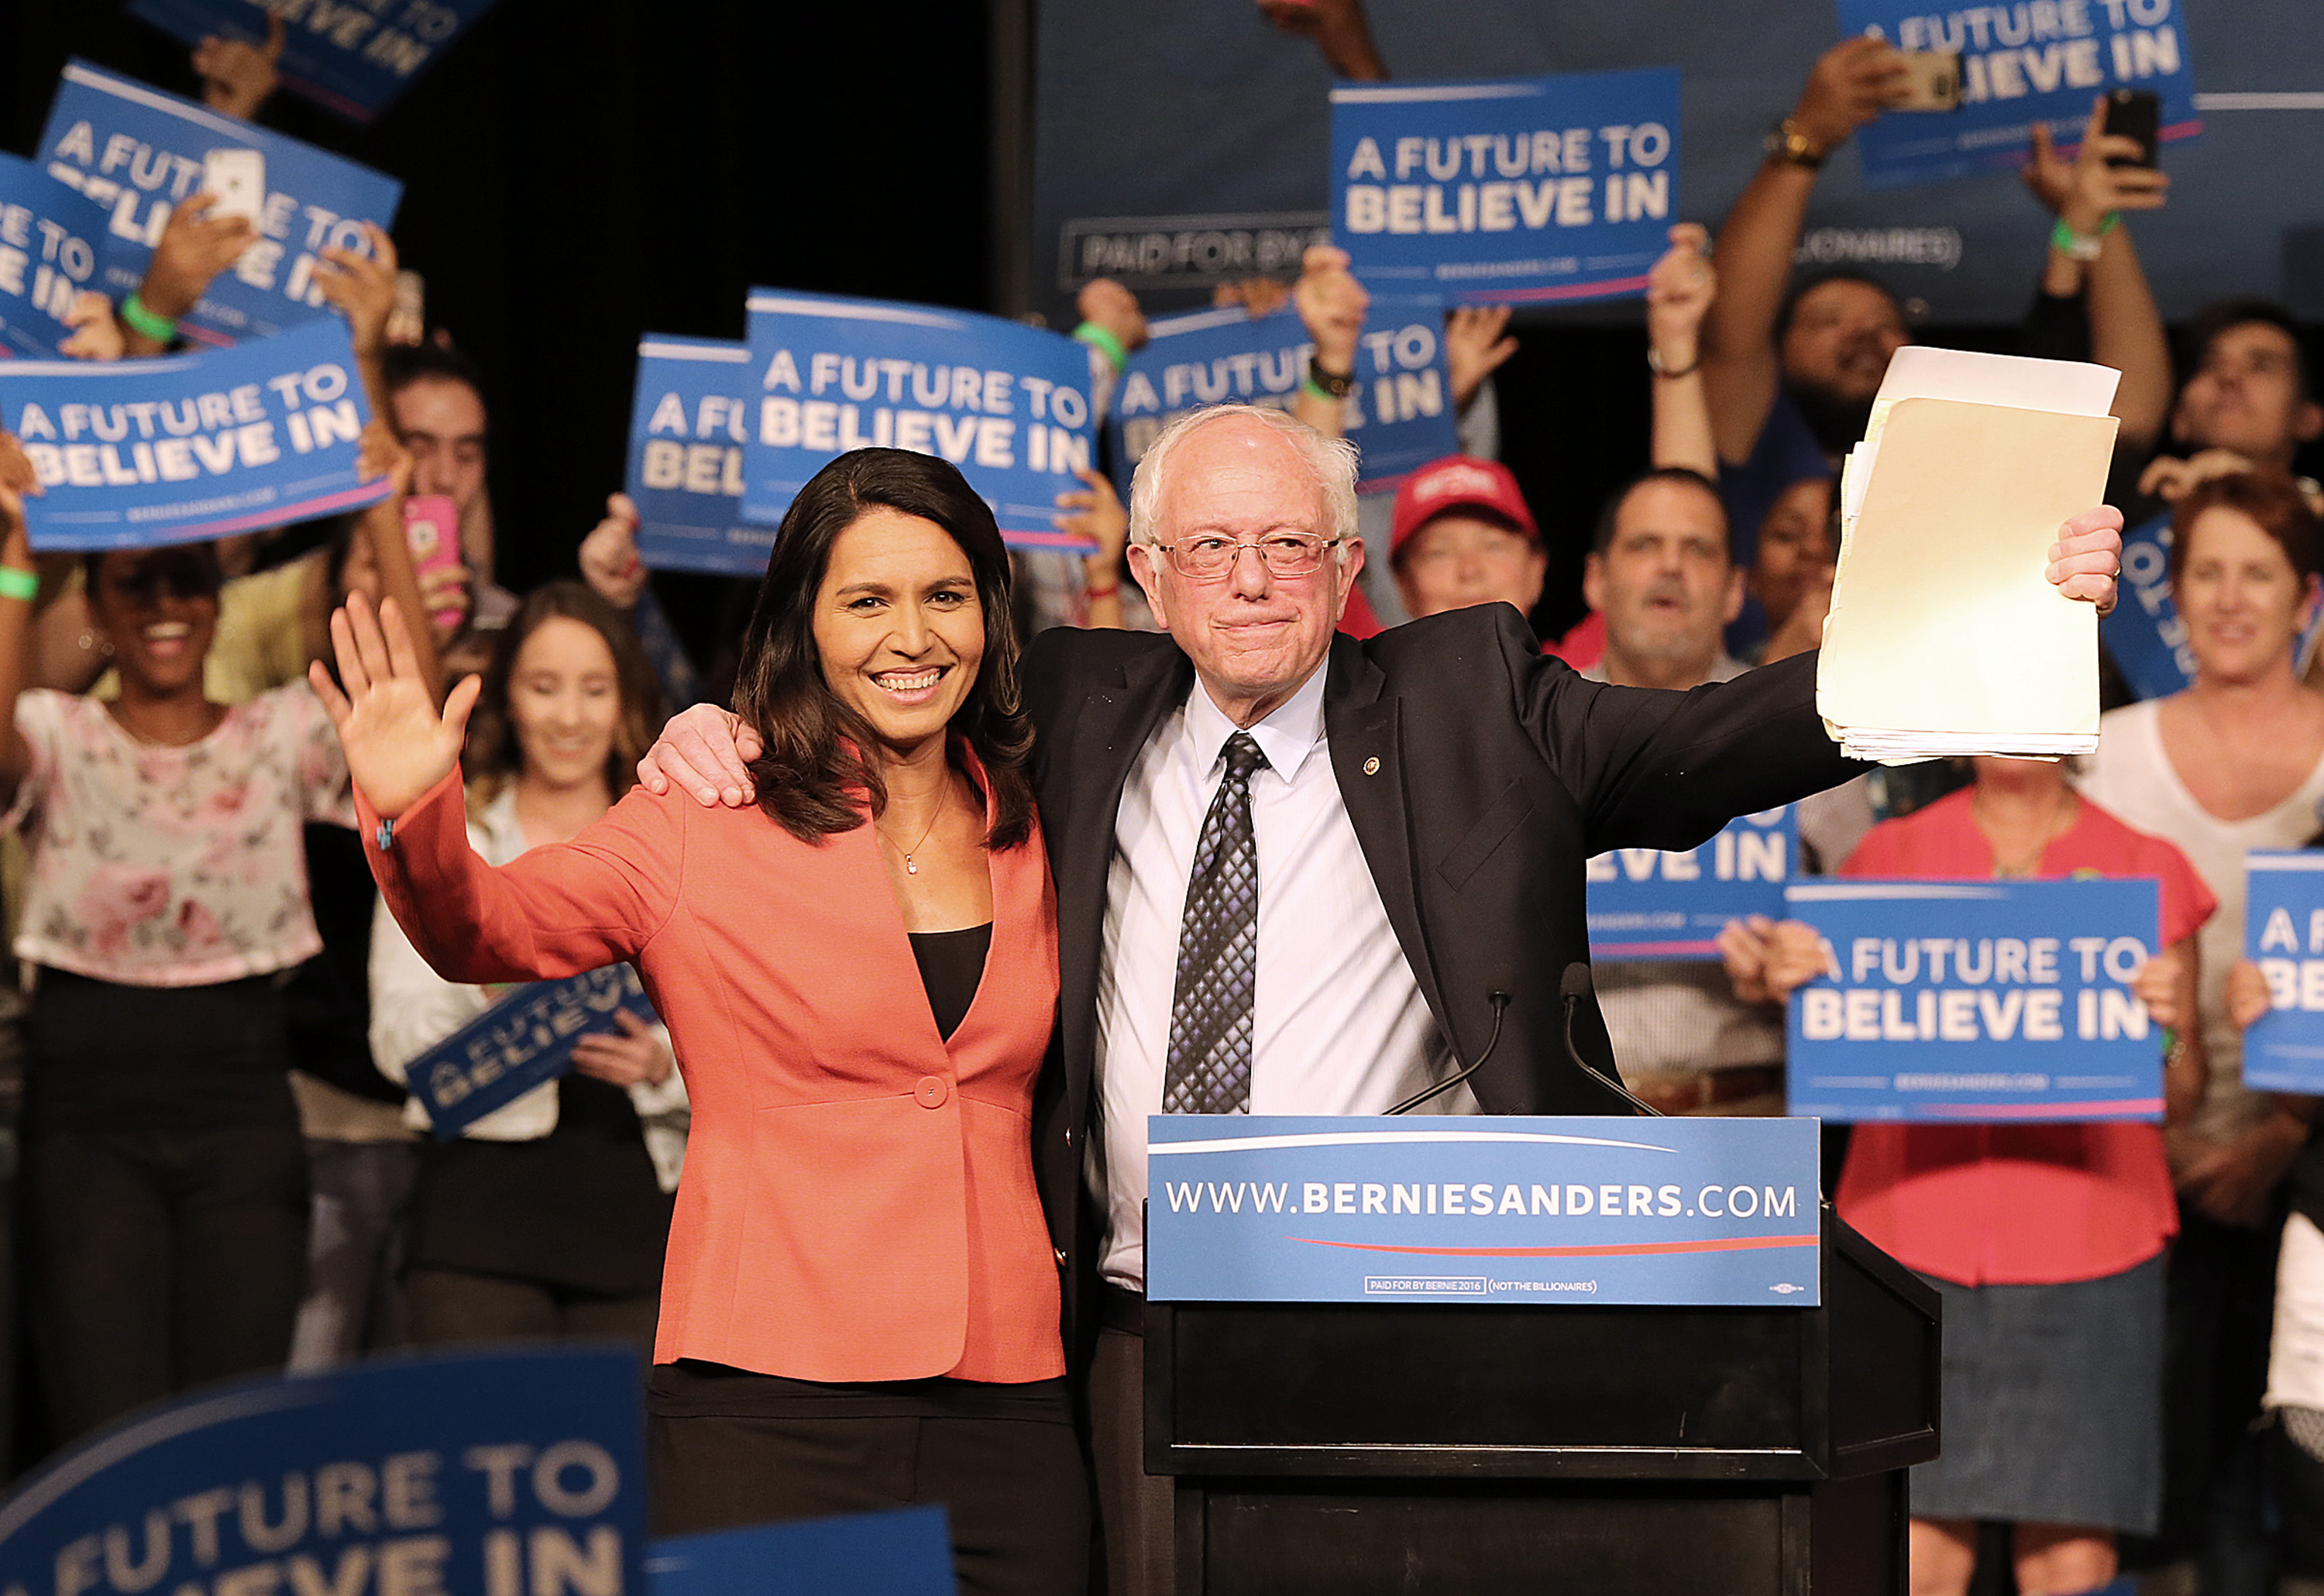 Rep. Tulsi Gabbard, D-Hawaii, and Democratic presidential candidate Sen. Bernie Sanders wave to supporters during a campaign event in Miami on Tuesday, March 8, 2016.